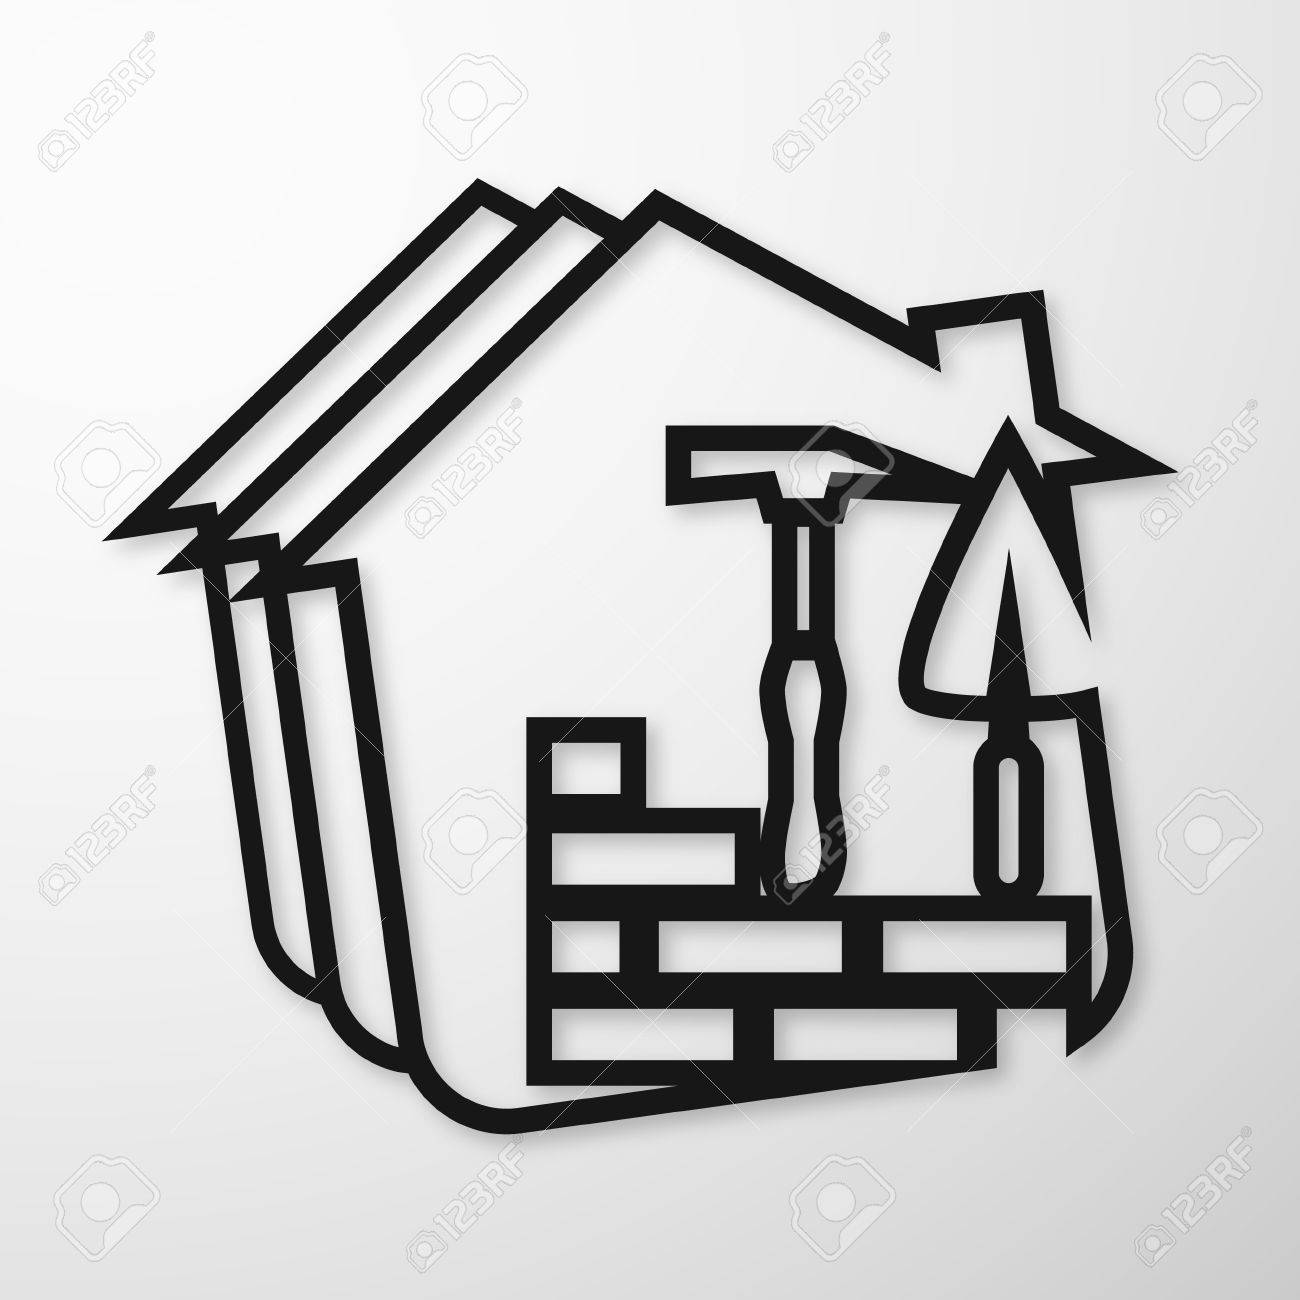 Building Symbol For Business, Bricklaying And Trowel Royalty Free ...